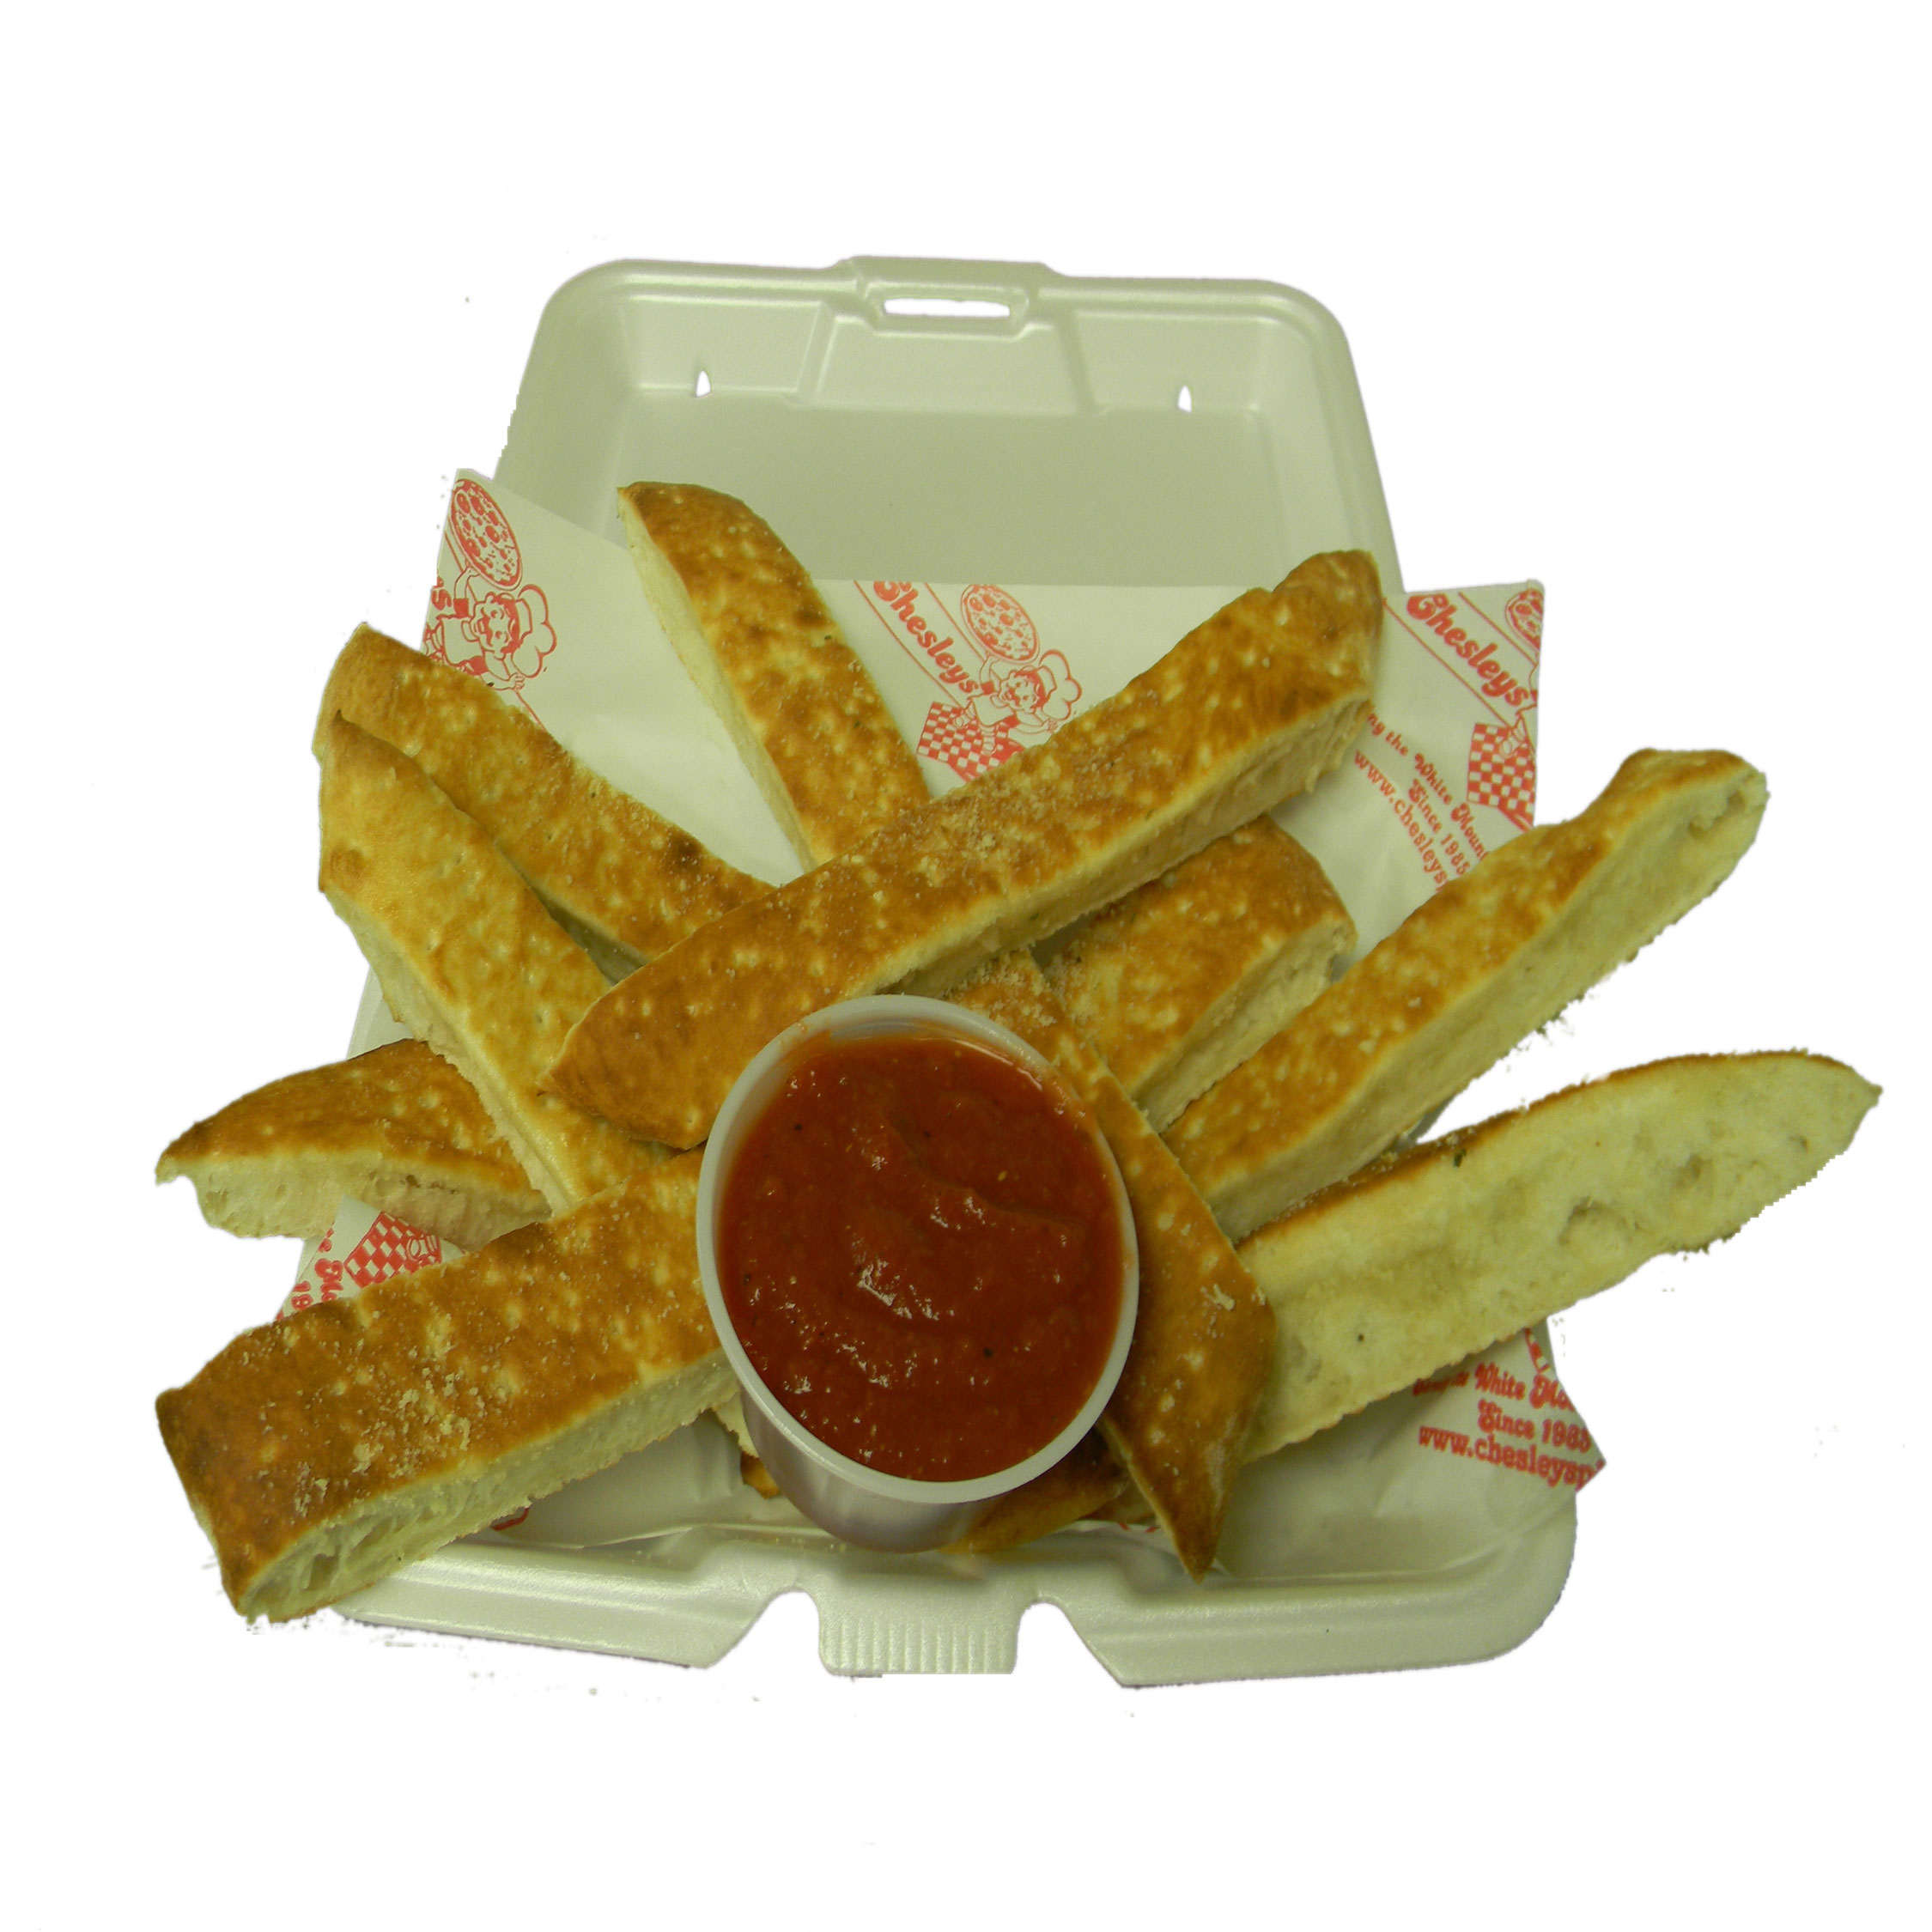 Breadsticks Image